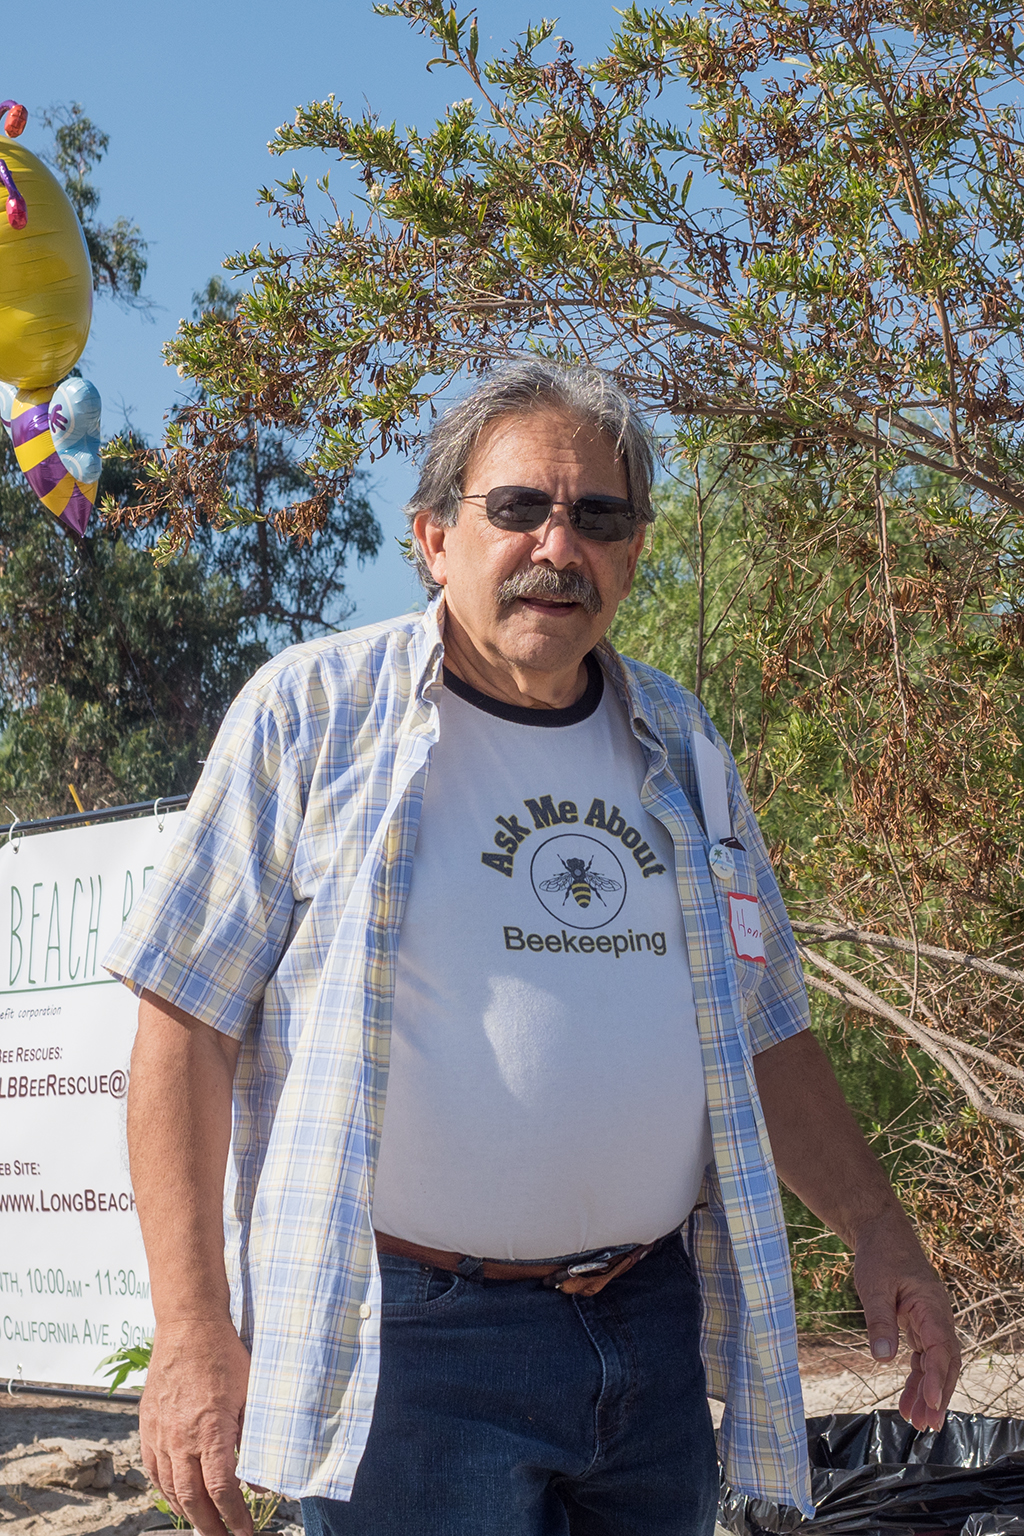 Henry Kurland, founding President of the Long Beach Beekeepers, at the opening of the Willow Springs Bee Sanctuary. Photo by Joan Day.